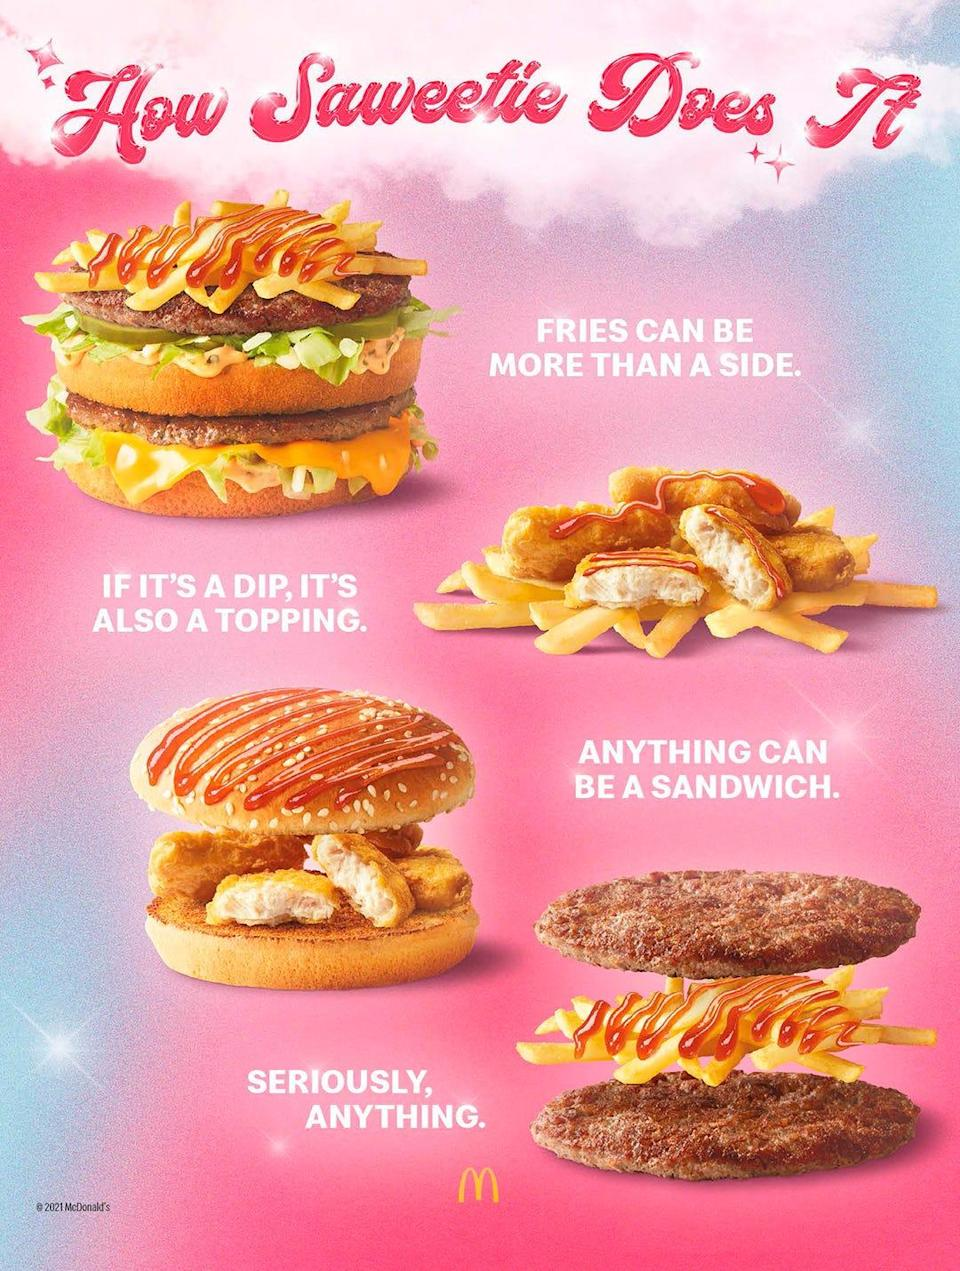 Saweetie has different ways she eats her McDonald's collaboration meal, which will debut Aug. 9 at restaurants nationwide.